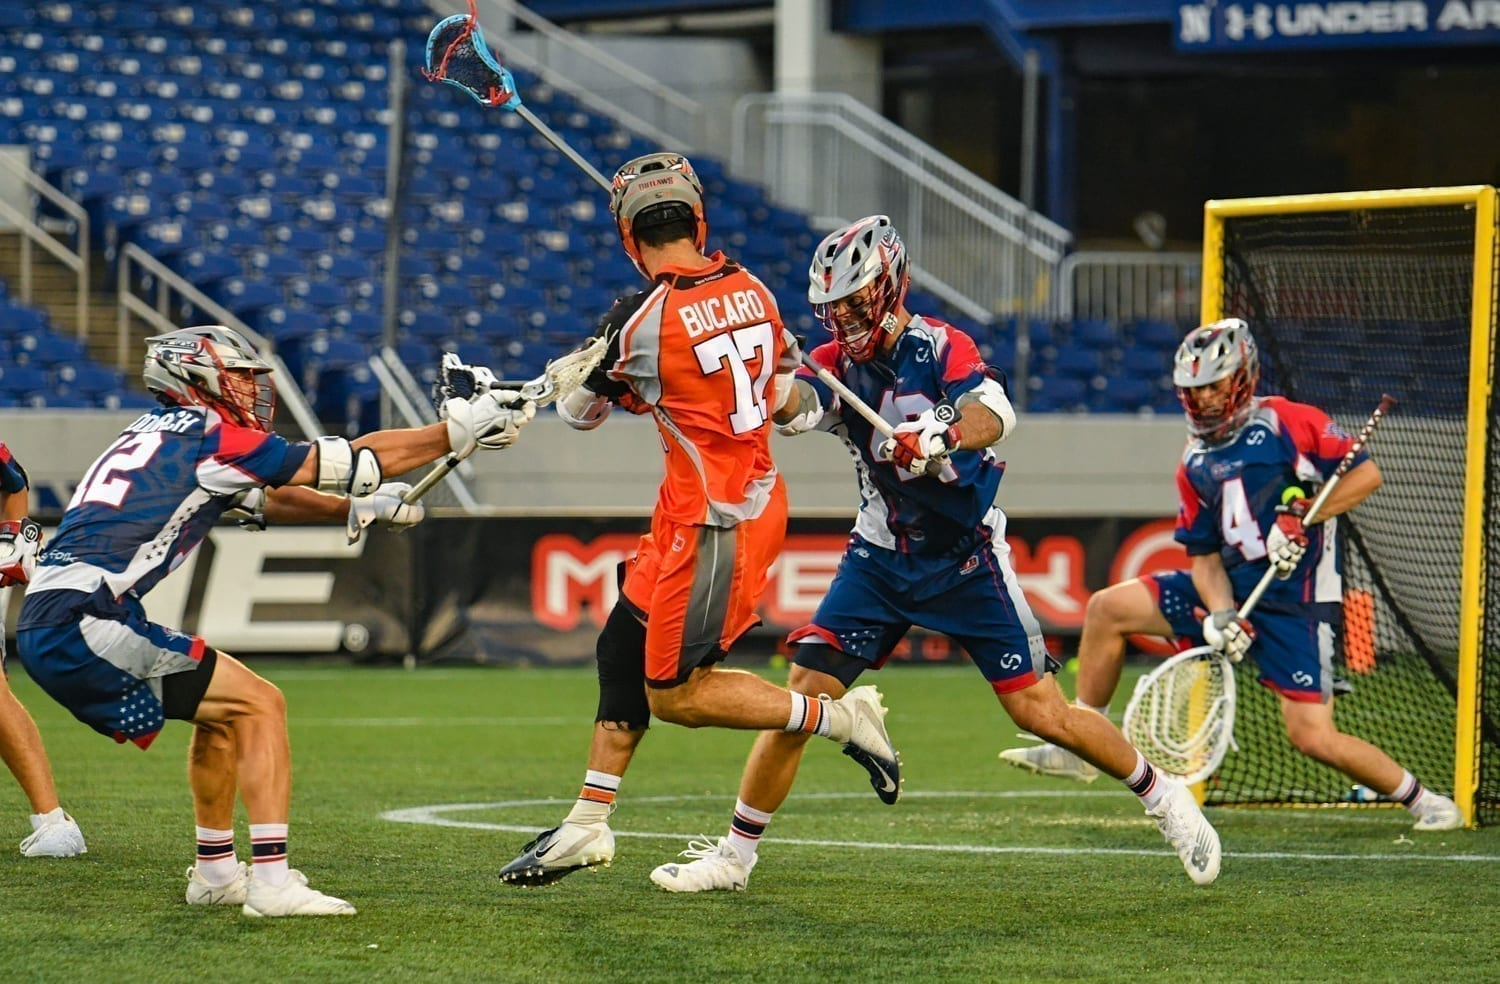 All-MLL MVP Bucaro MLL Major League Lacrosse